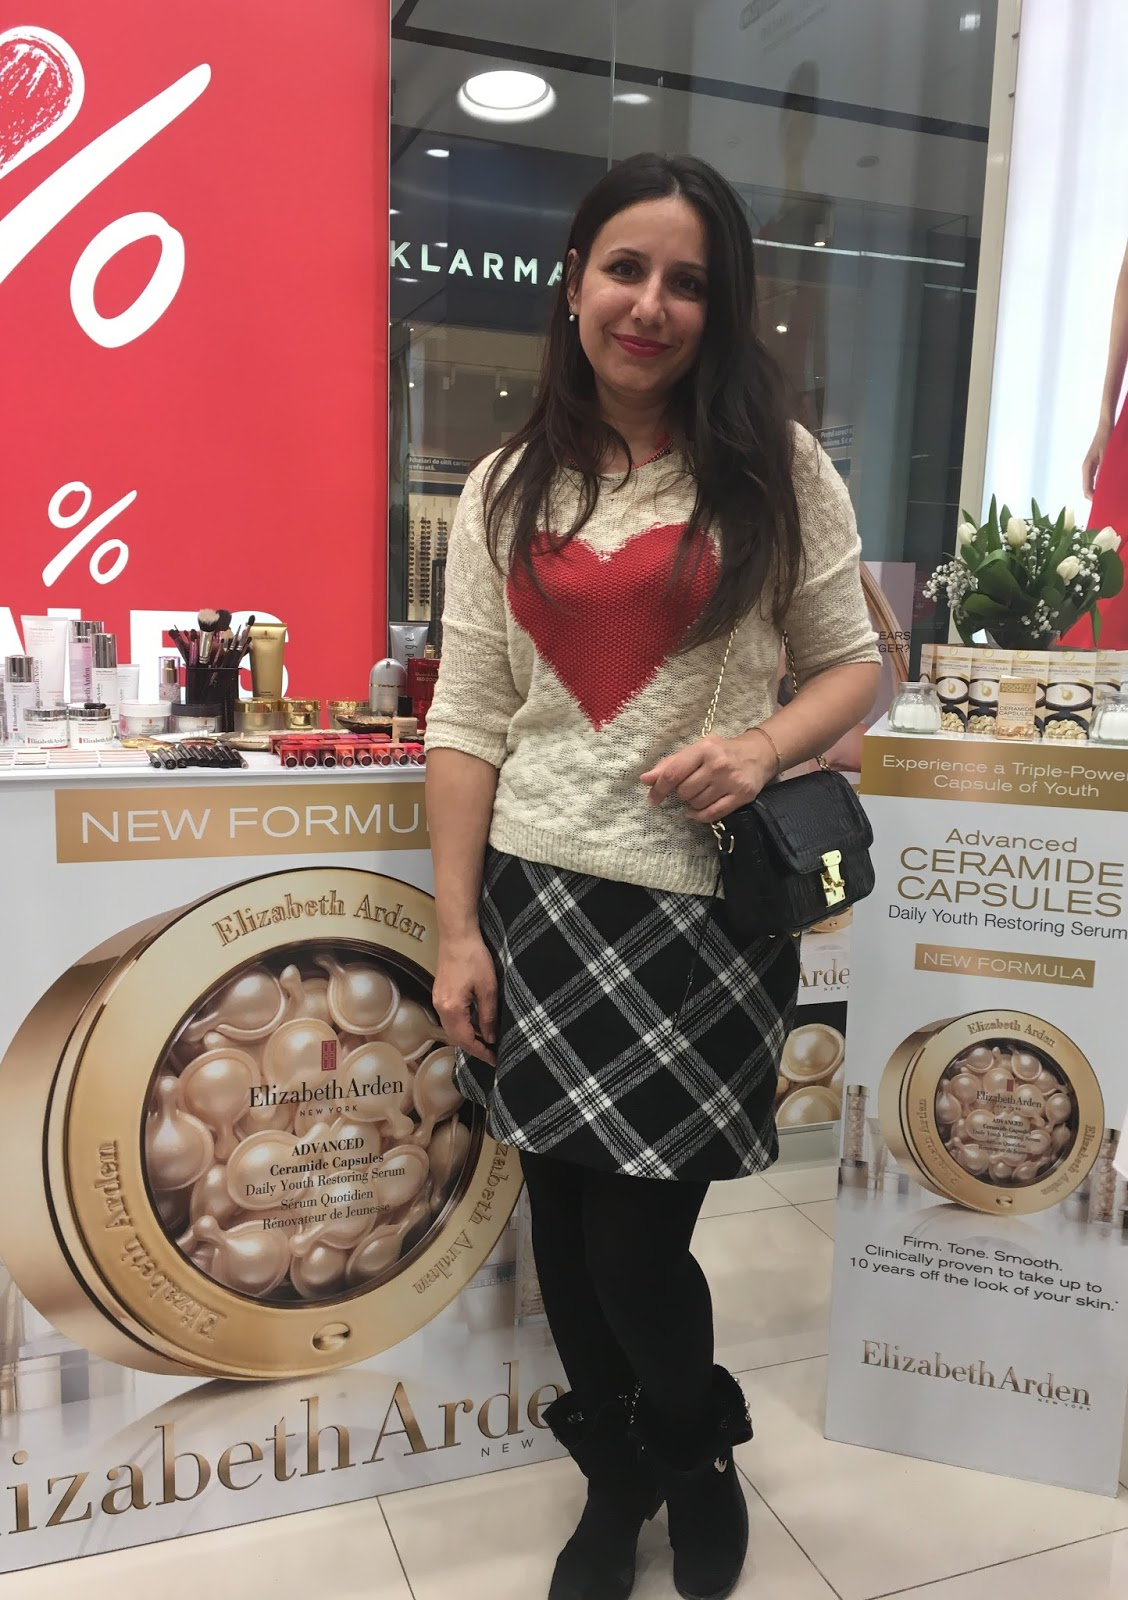 Advanced Ceramide Capsules by Elizabeth Arden